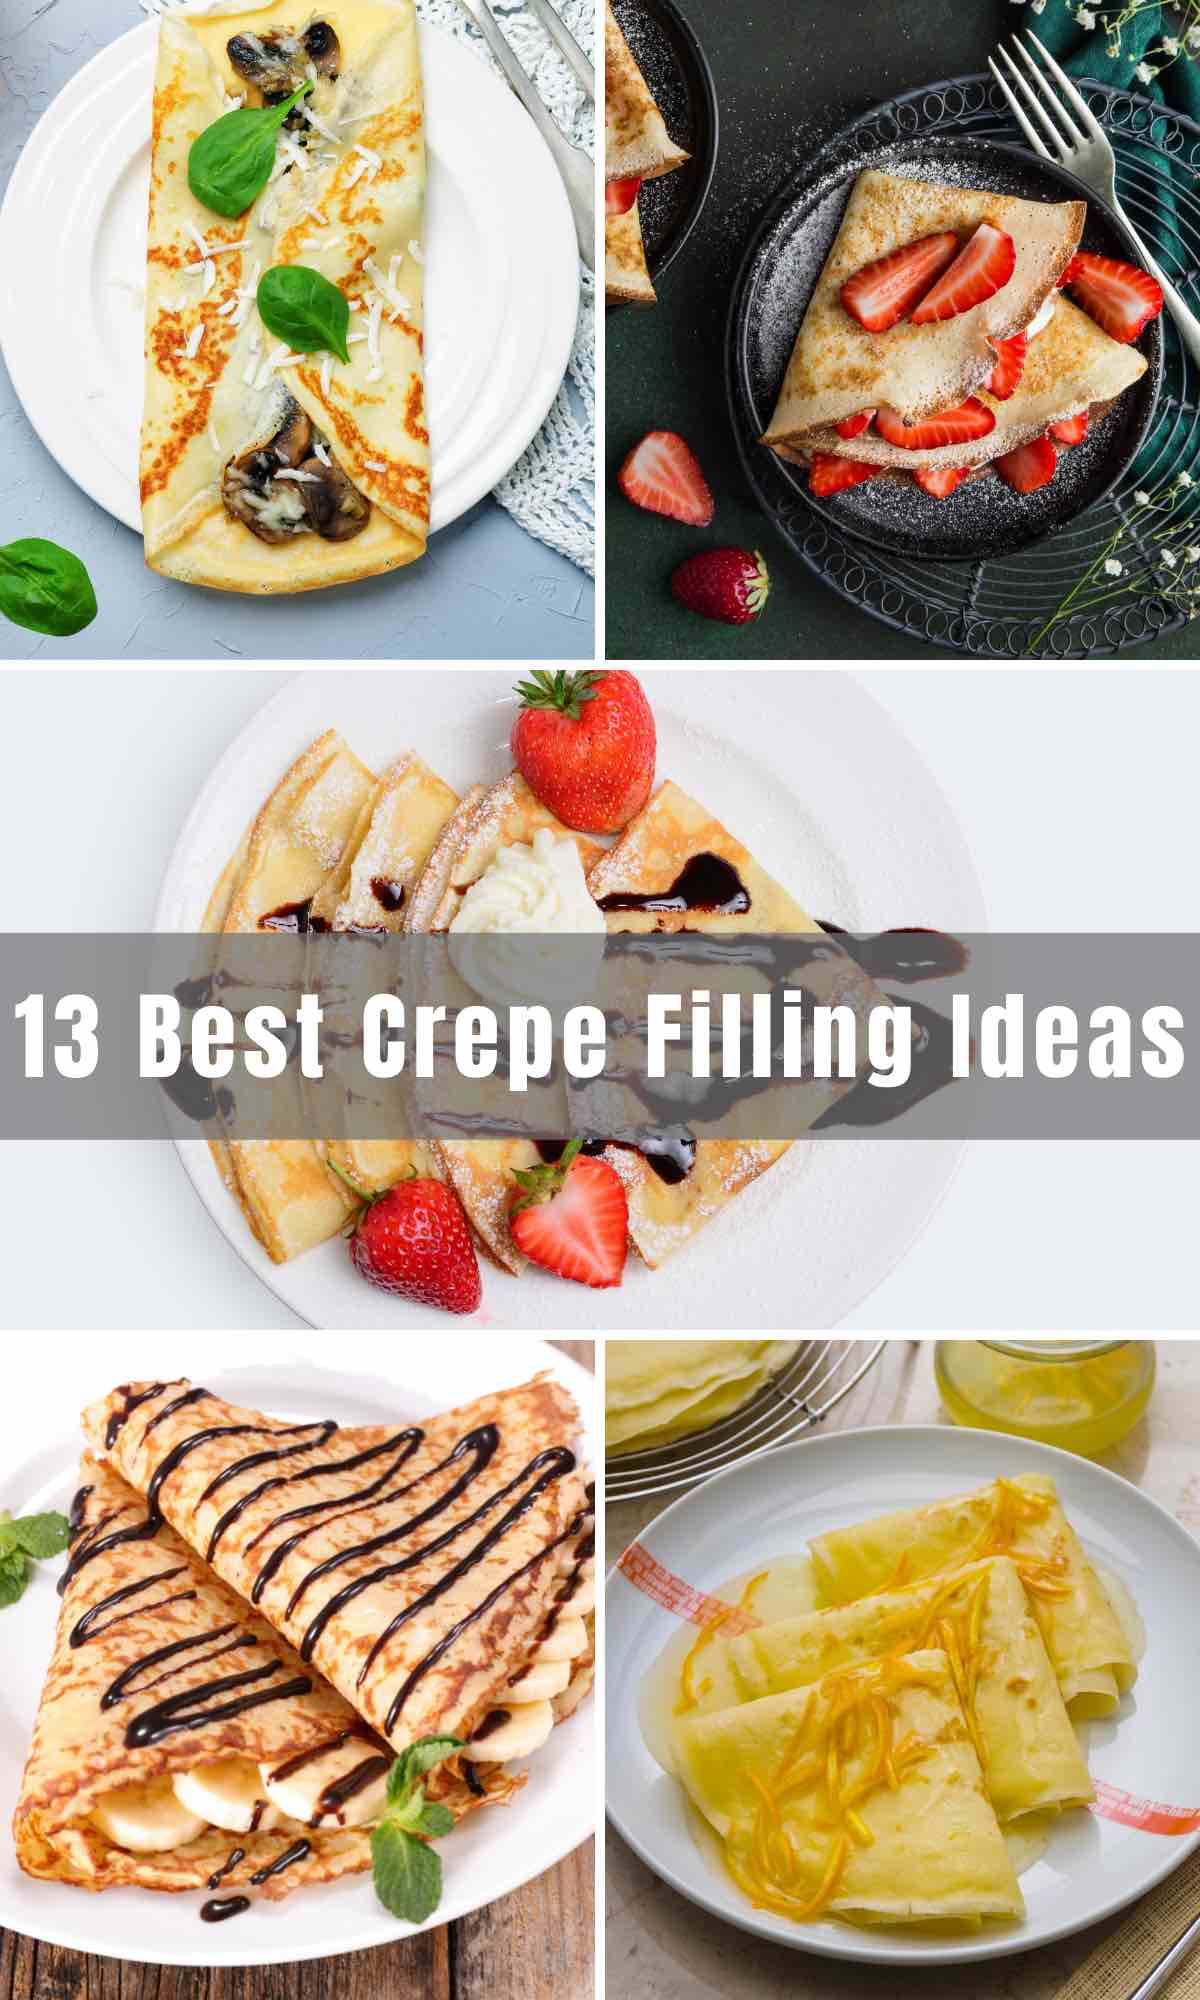 Below you will find 13 of the Best Crepe Filling Ideas that will give you a few options for breakfast, lunch, and dinner! Plus, if you like them on the sweeter side, you may just find a recipe in there for that too!